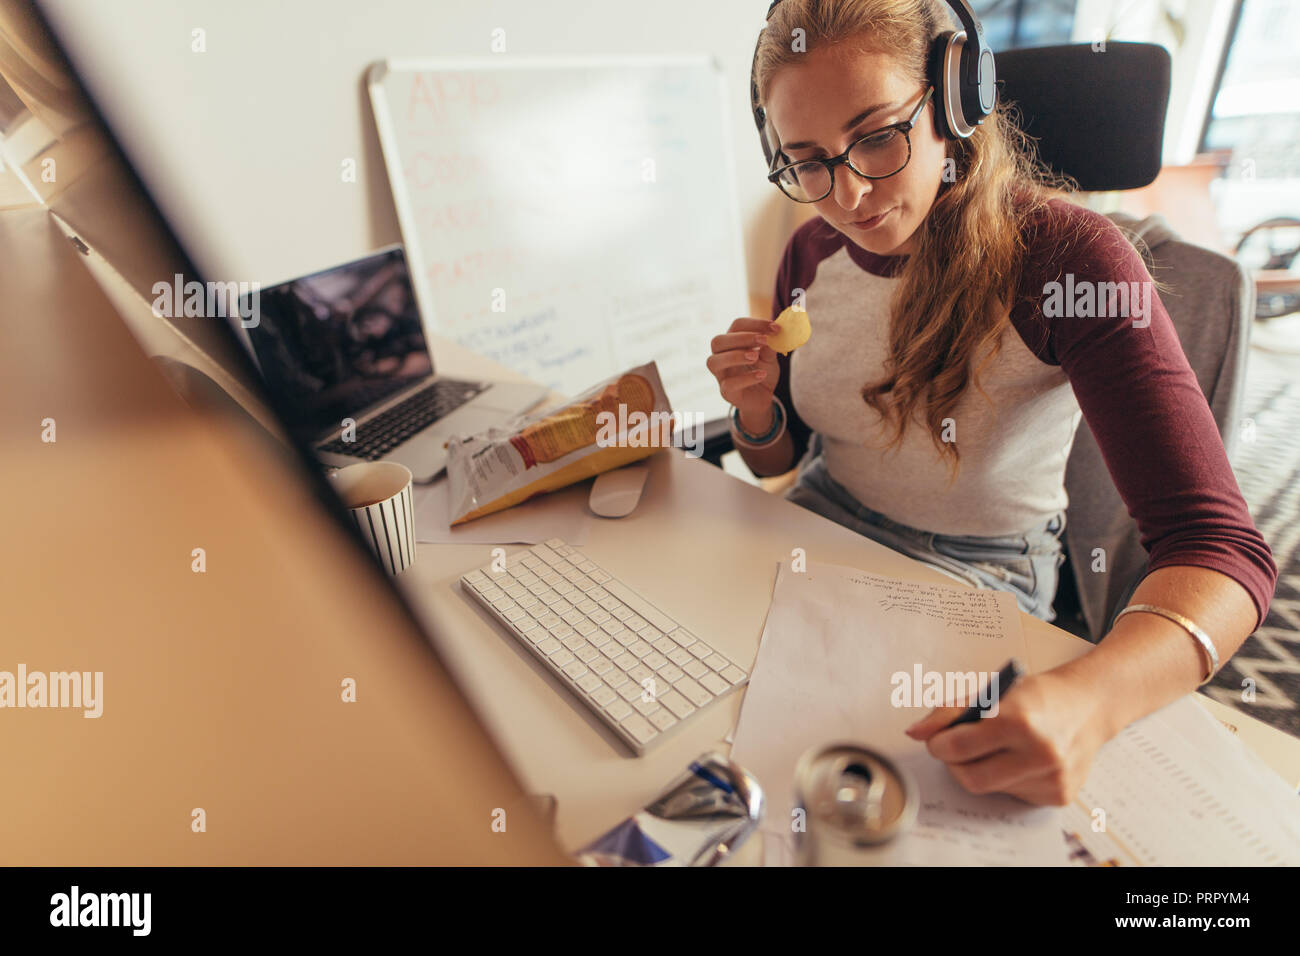 Woman writing programme codes on paper and eating. Female coder working on new software development at tech startup in office. - Stock Image